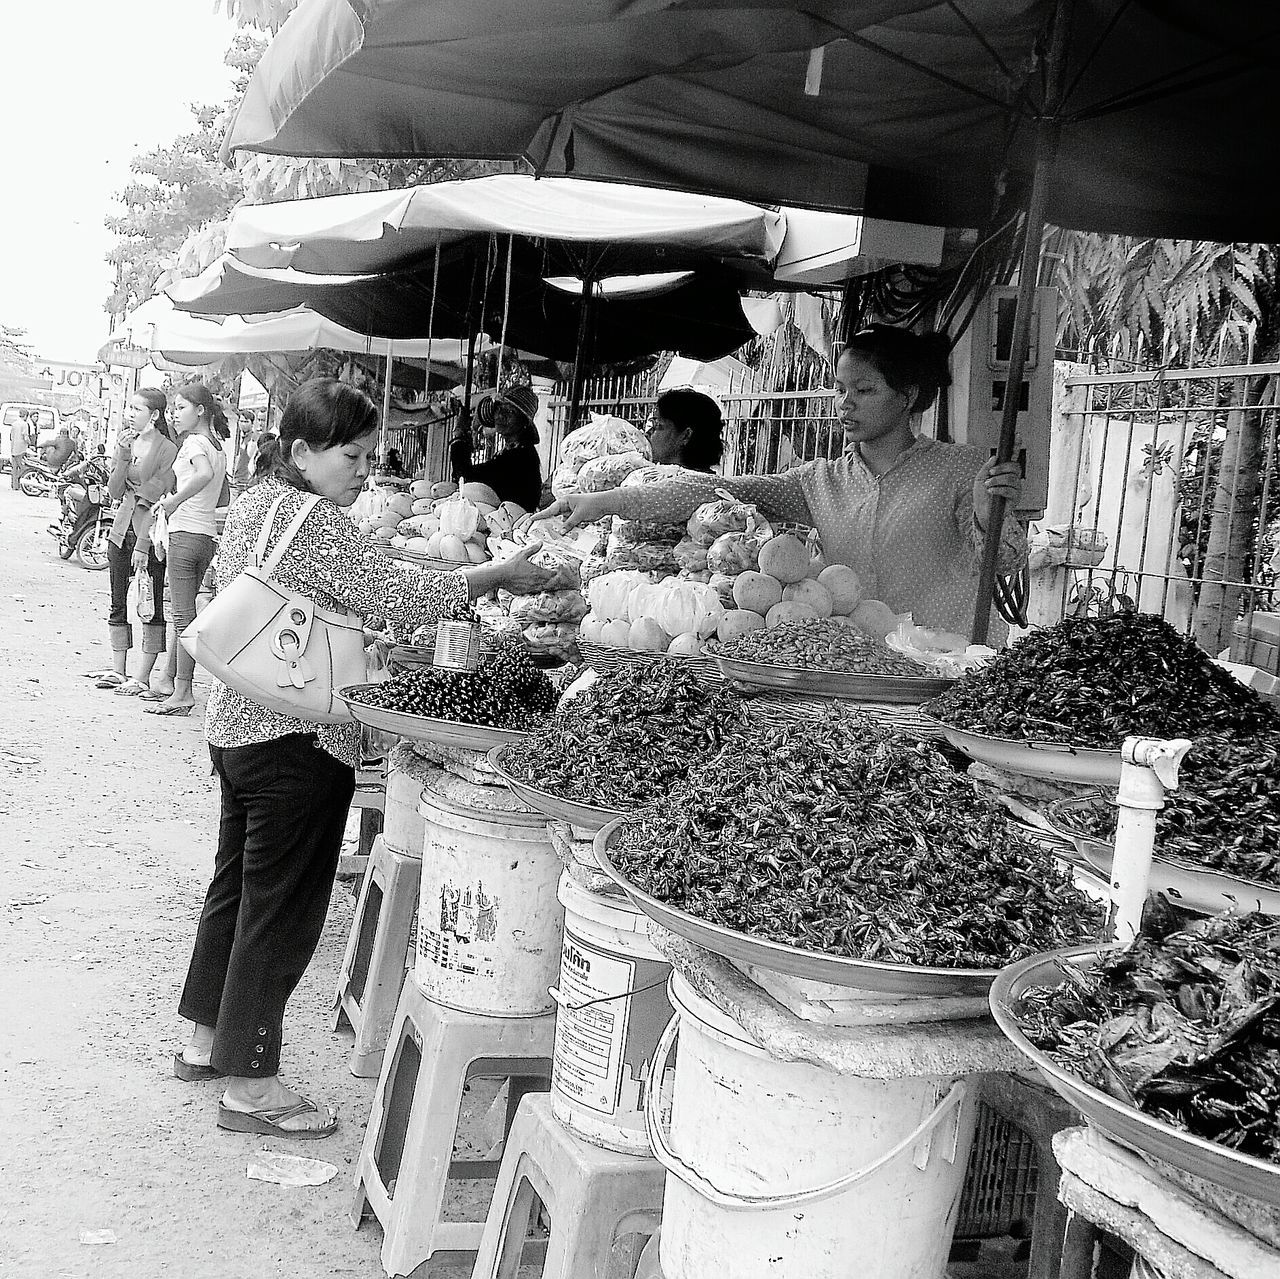 Vietnamese markets Real People Outdoors EyeEm Best Shots - Black + White Onthestreet Market Vietnam Adventure Travel Culinaryadventures Trynewthings Travelphotography Explore Locals